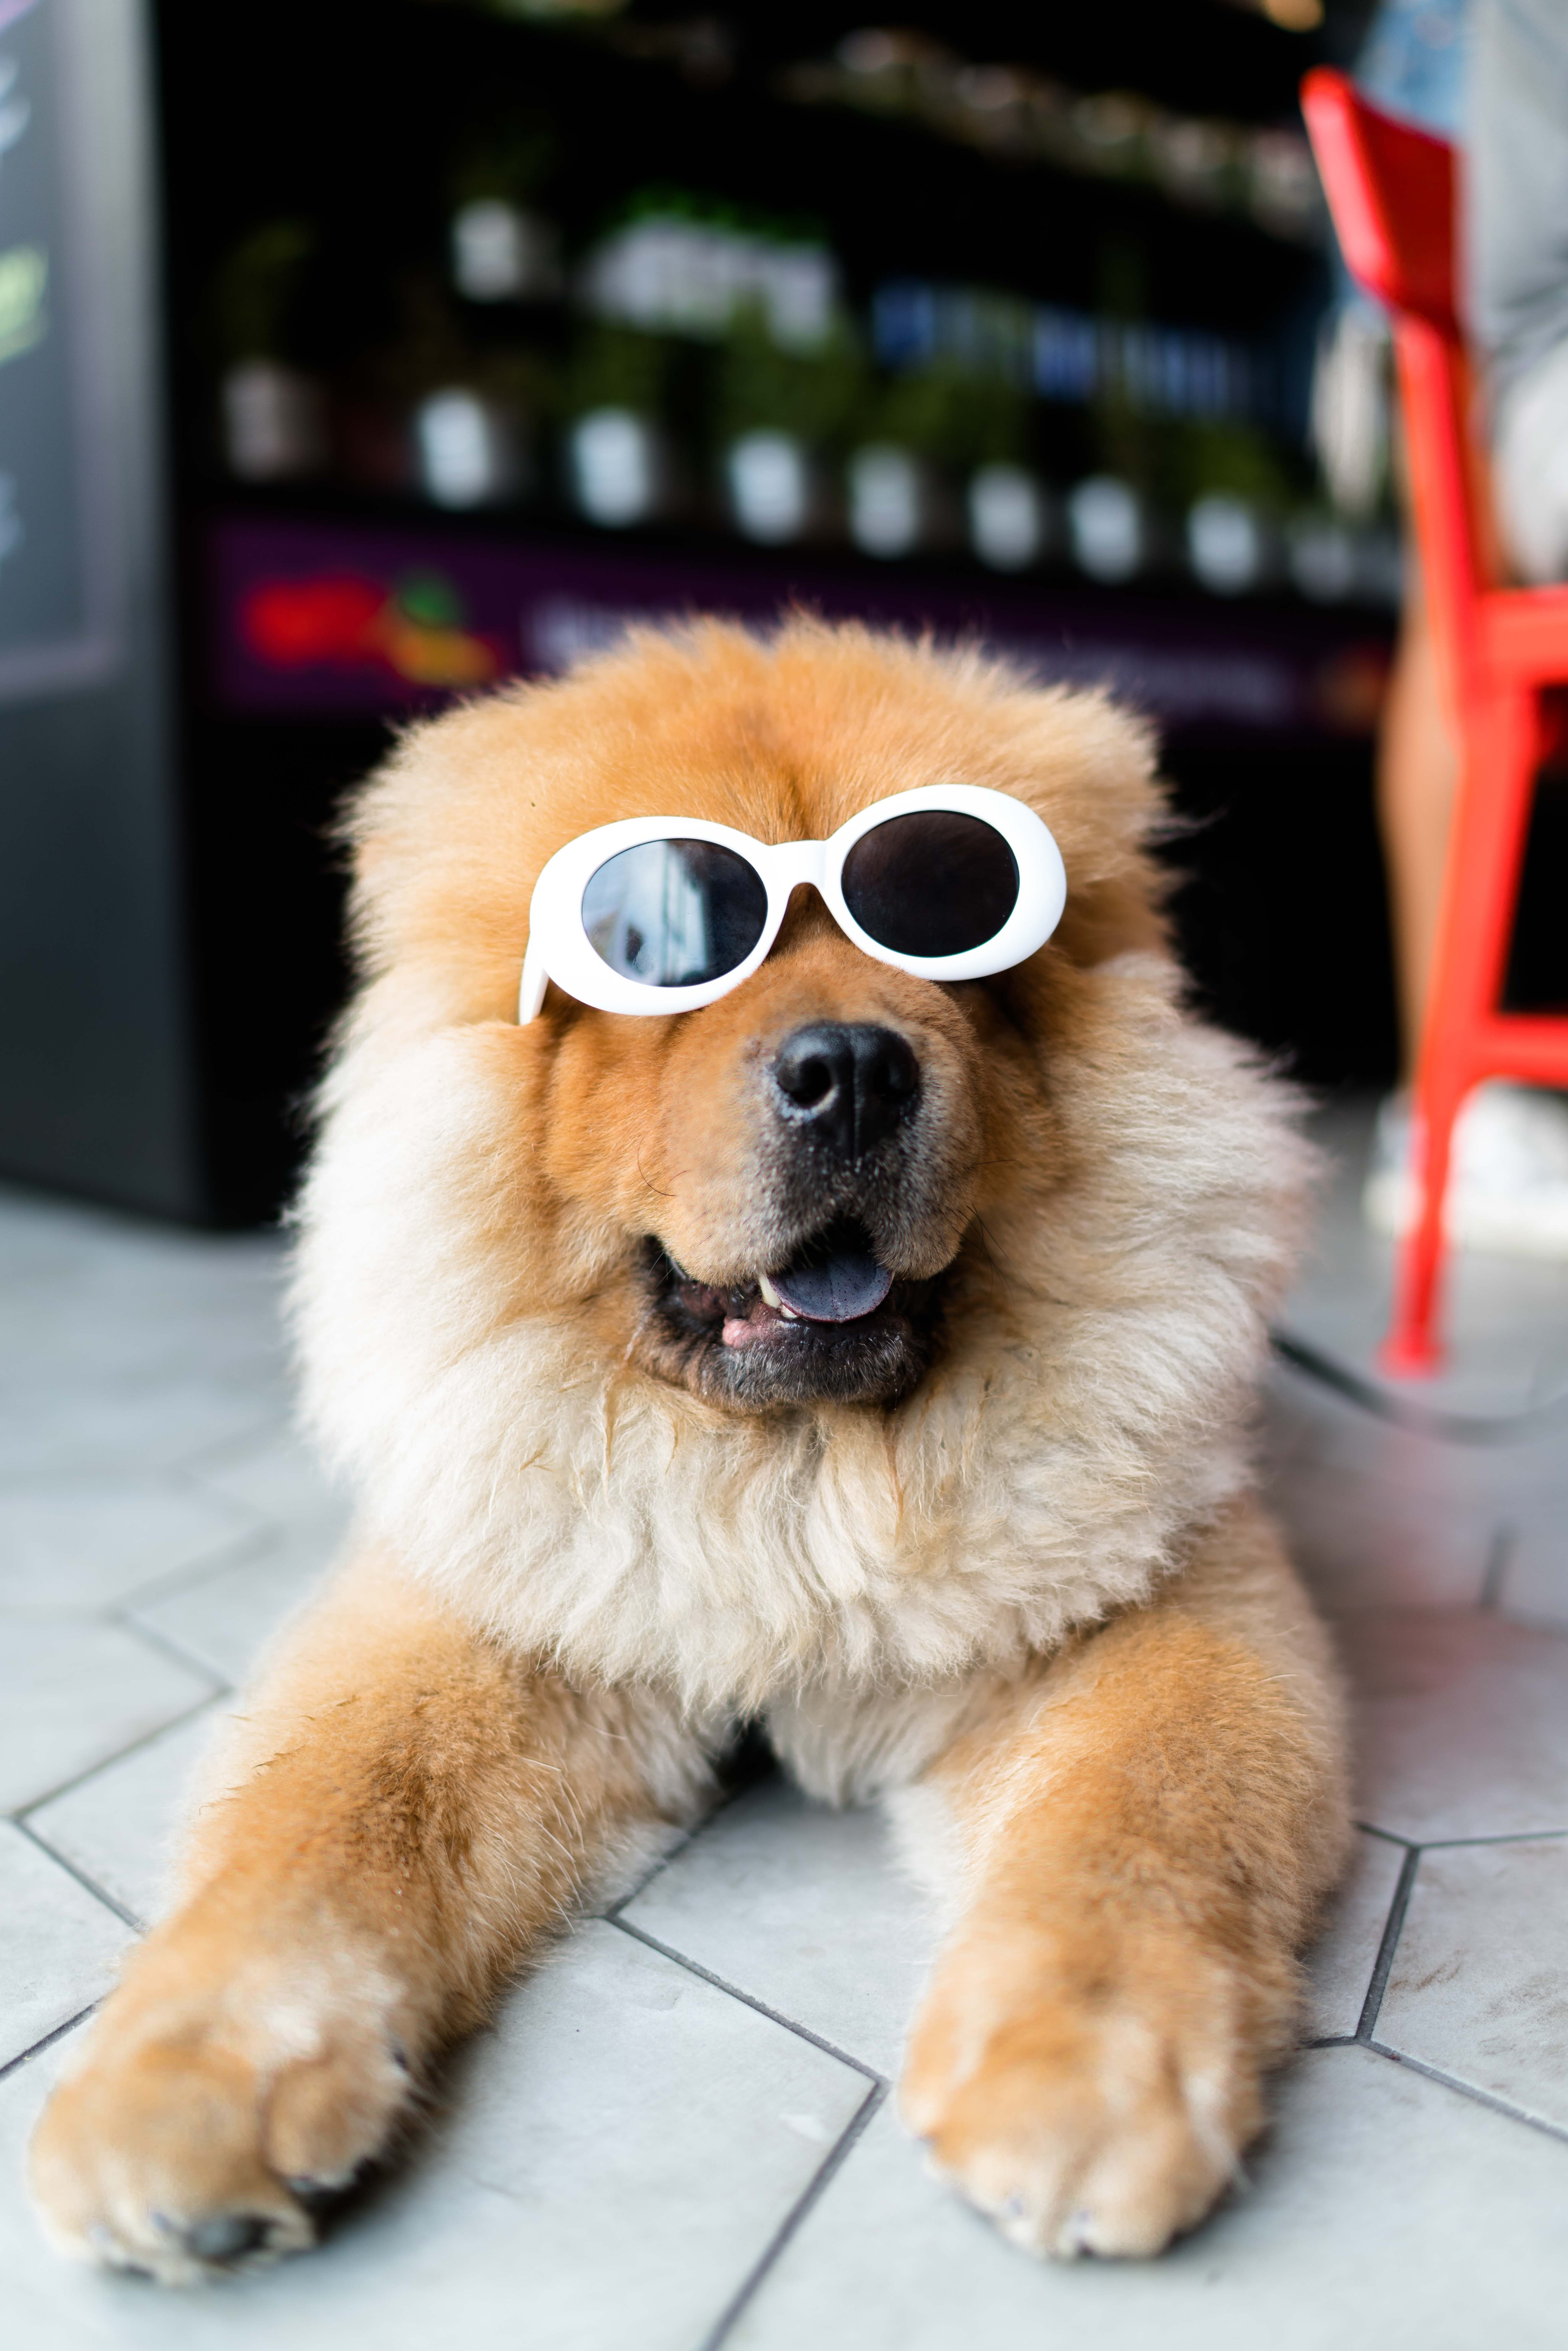 4 Tips to Make a Living at Dog Grooming from North Carolina Lifestyle Blogger Adventures of Frugal Mom